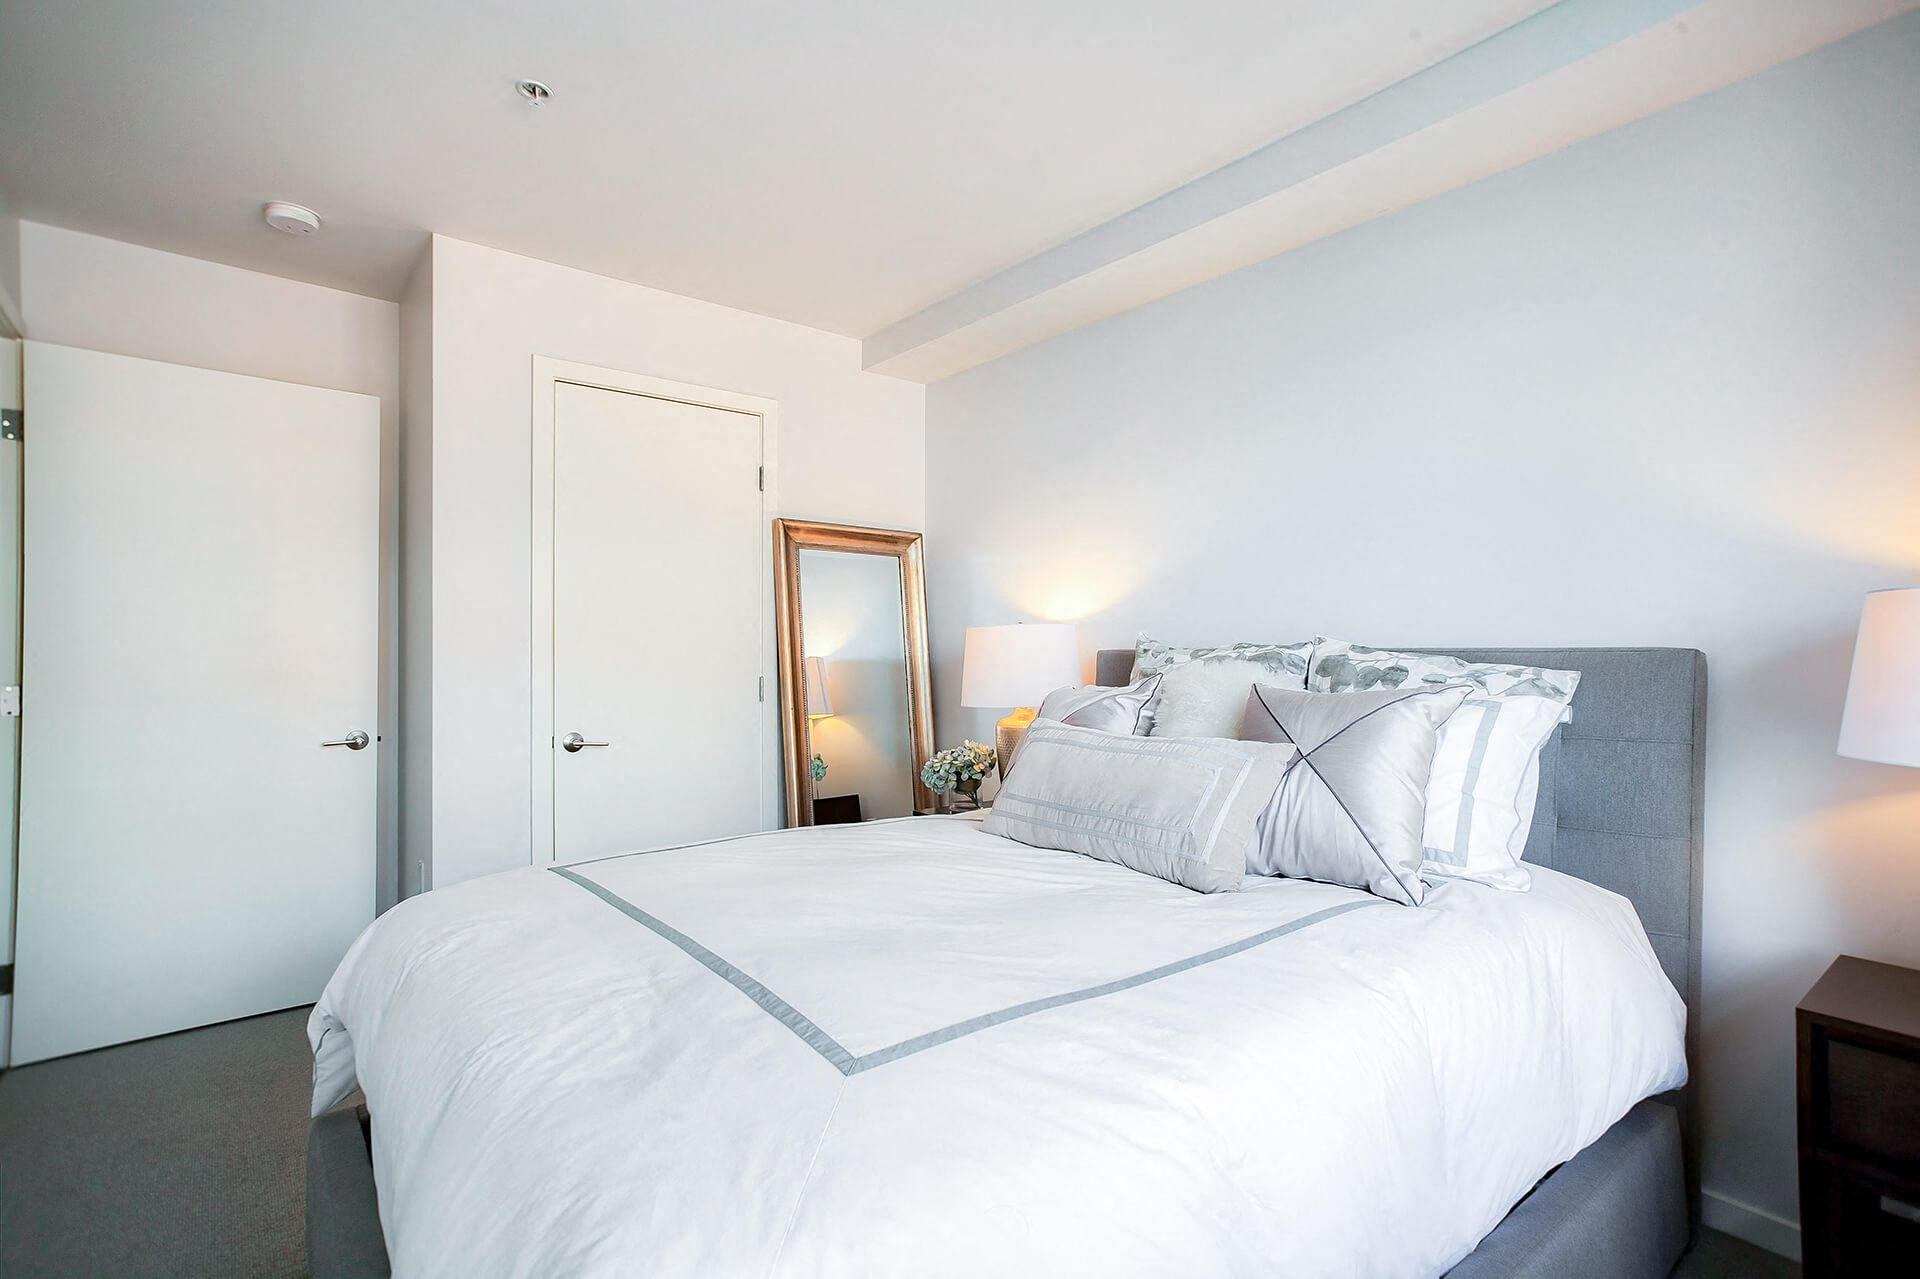 Condo finishes at Waterside Place by Windsor, Boston, Massachusetts